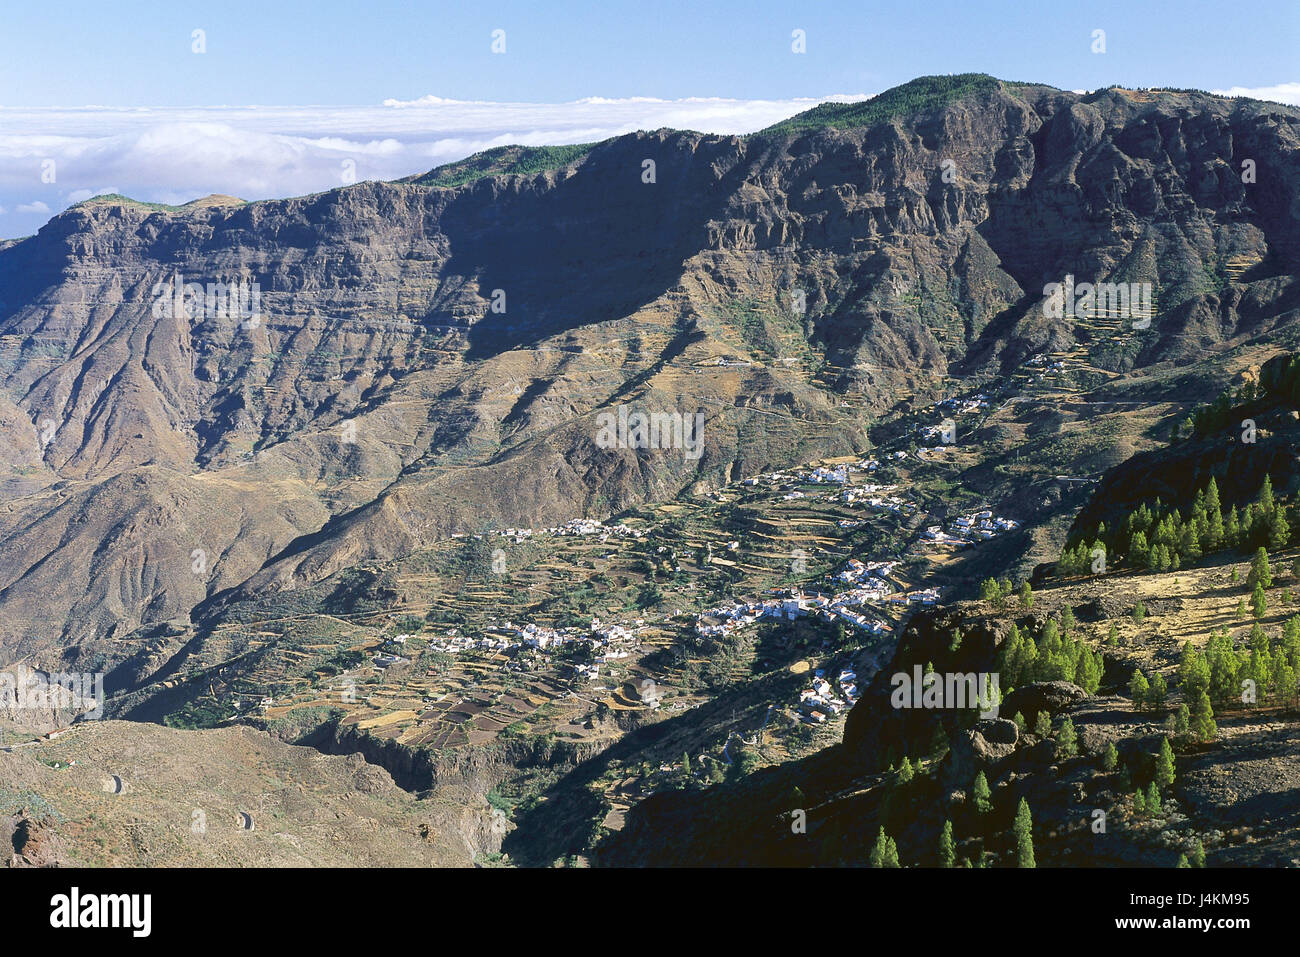 Spain, island grain Canaria, Roque Nublo, mountain landscape, place Europe, Südwesteuropa, Iberian peninsula, Espana, Stock Photo